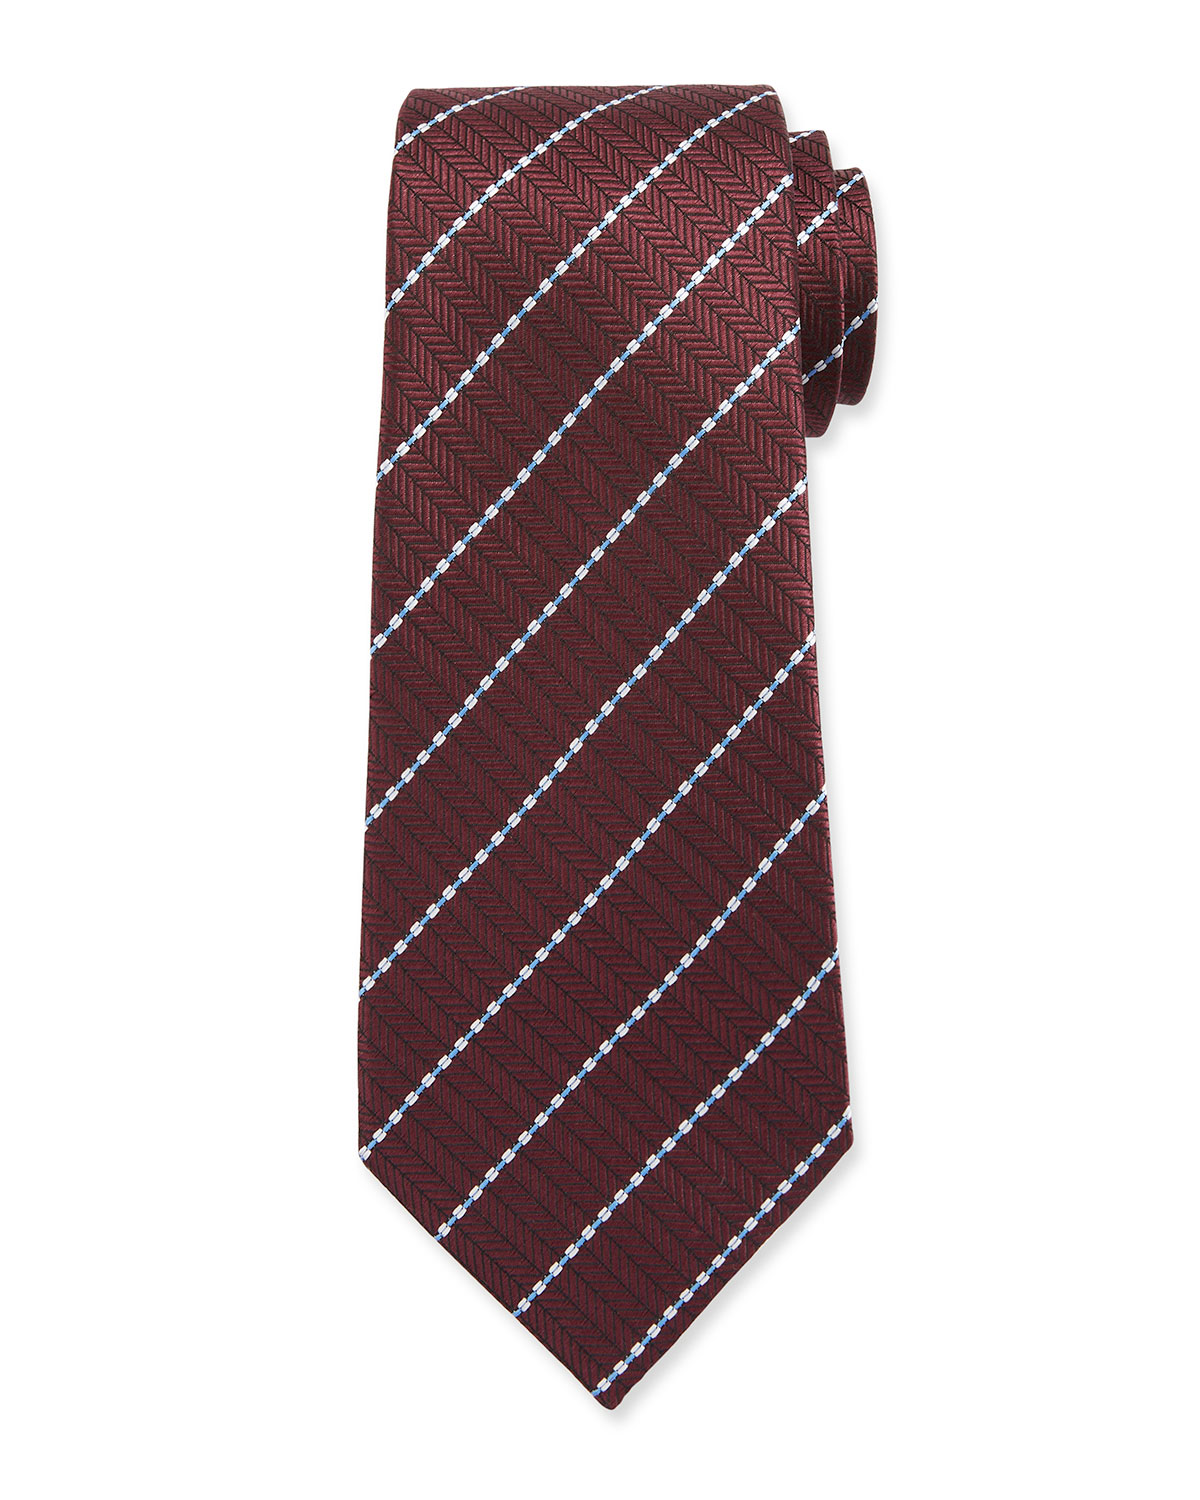 Ermenegildo Zegna Ties MEN'S STITCHED STRIPE TIE